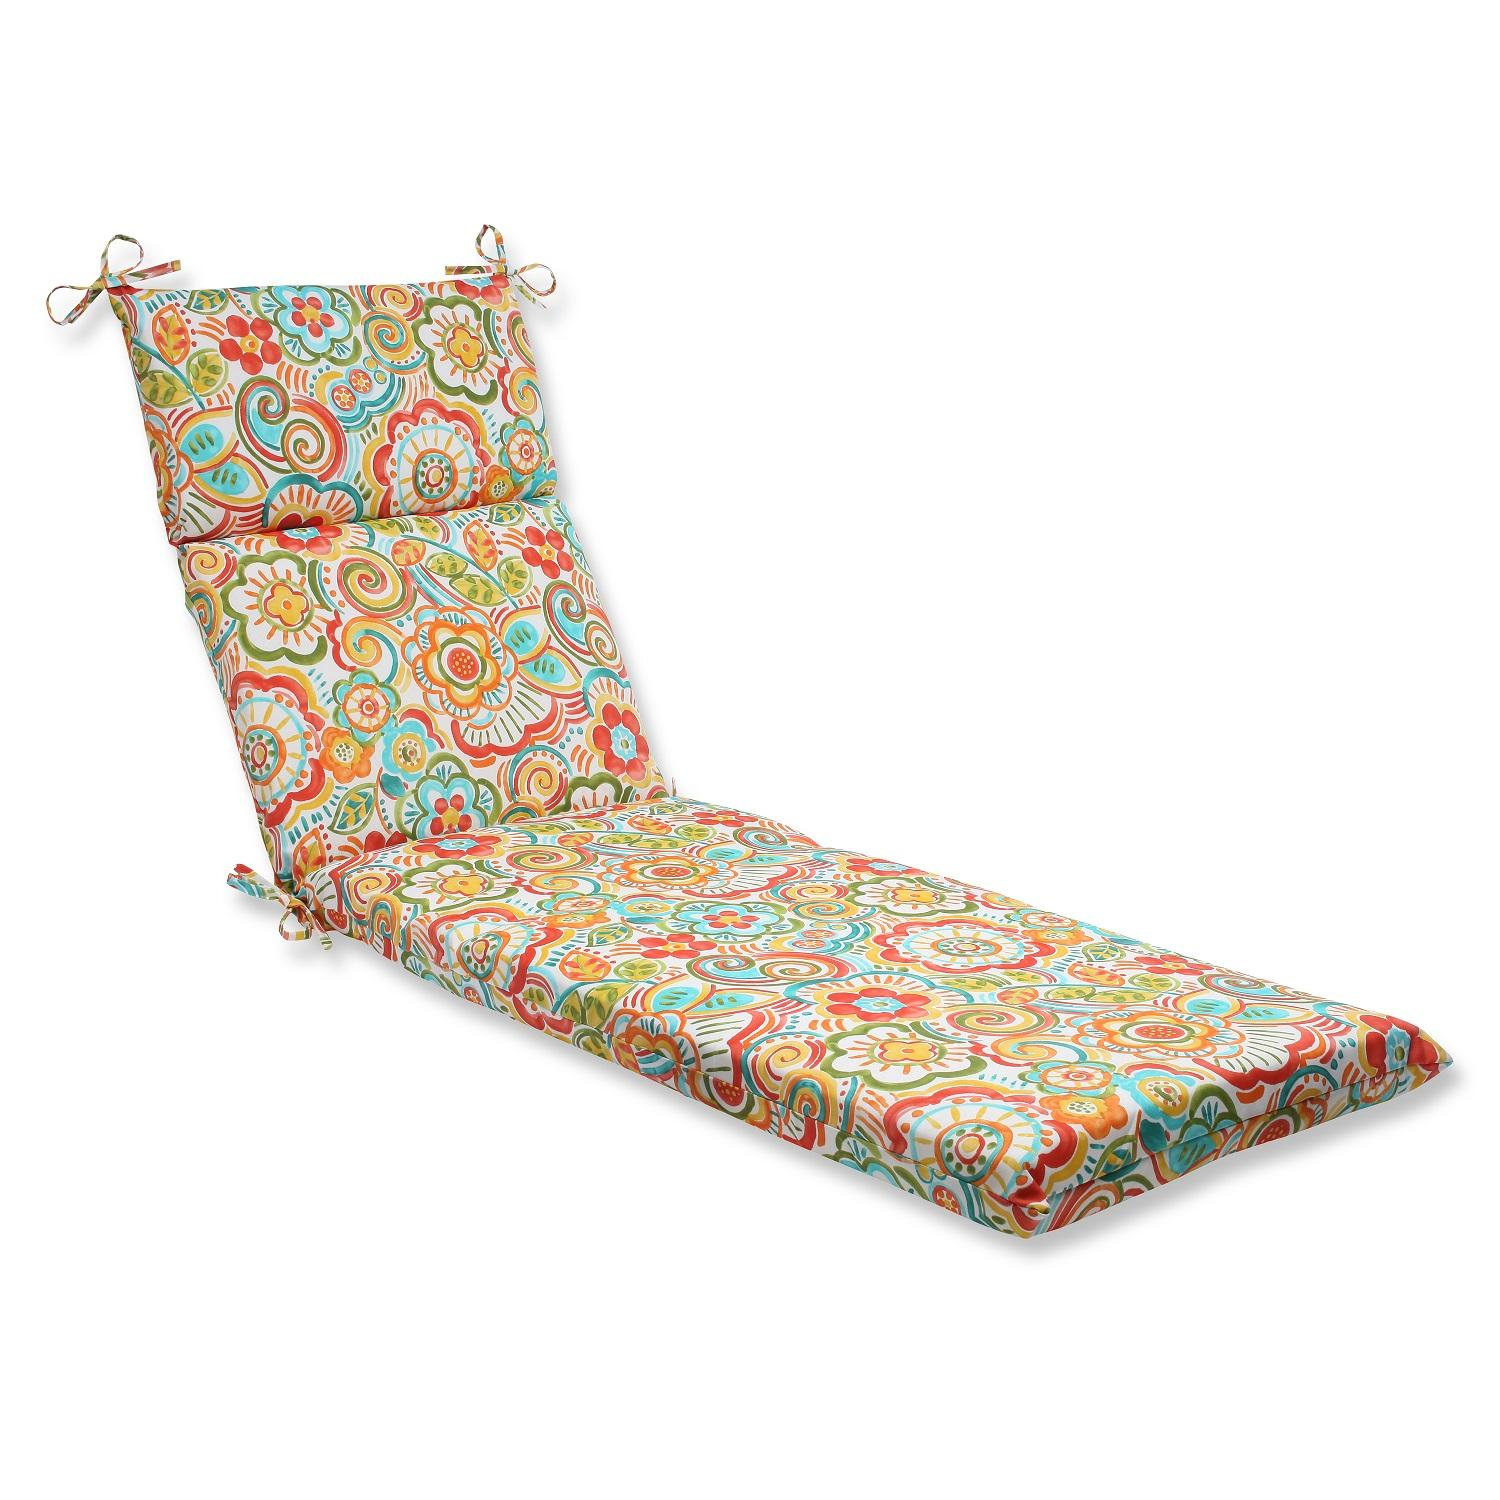 "21"" x 72.5"" Bronwood Carnival Outdoor Patio Chaise Lounge Cushion"